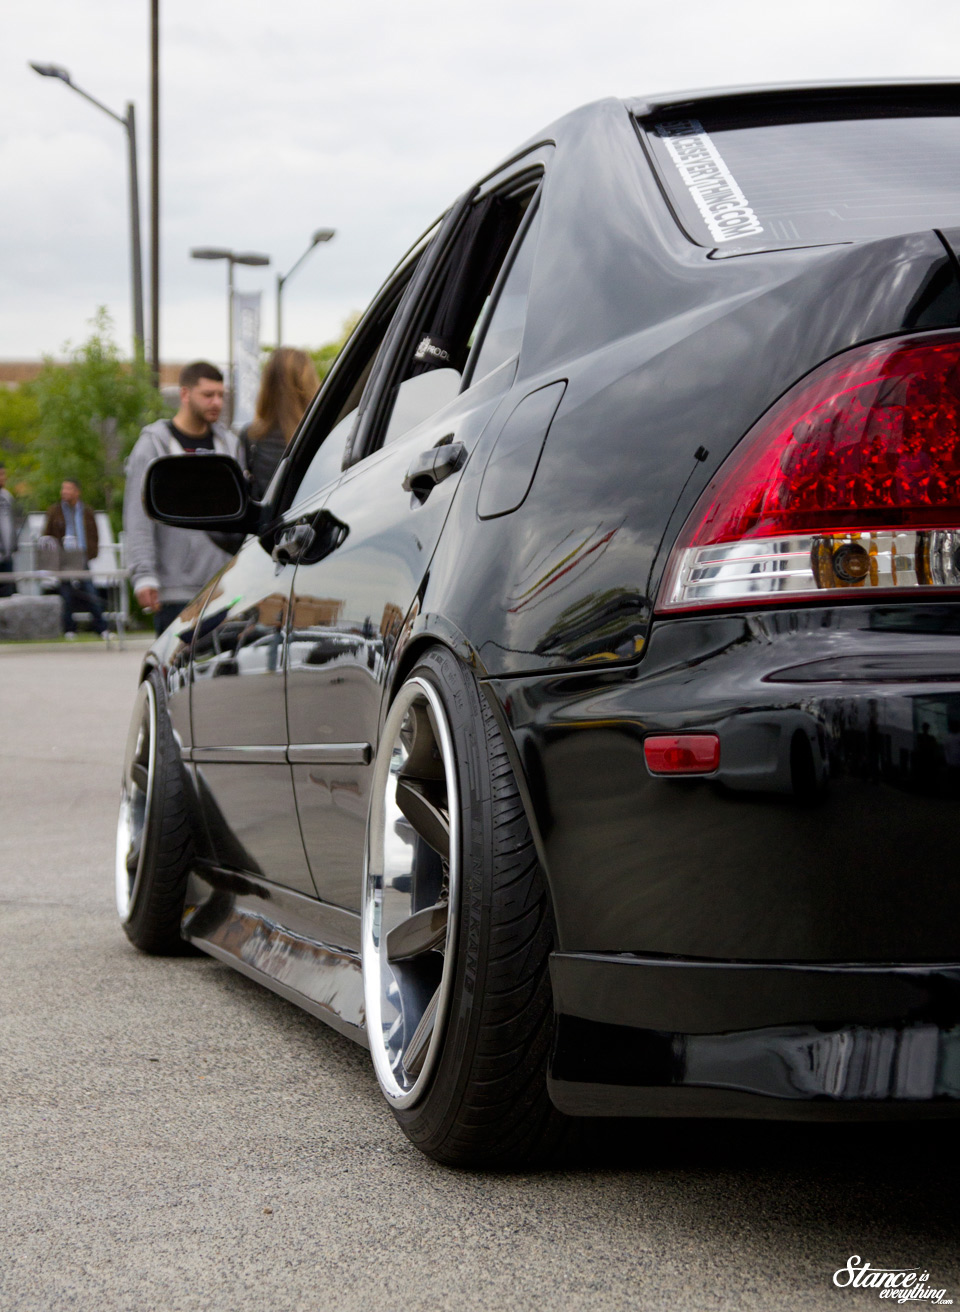 pfaff-tuning-scraped-crusaders-vip-lexus-is300